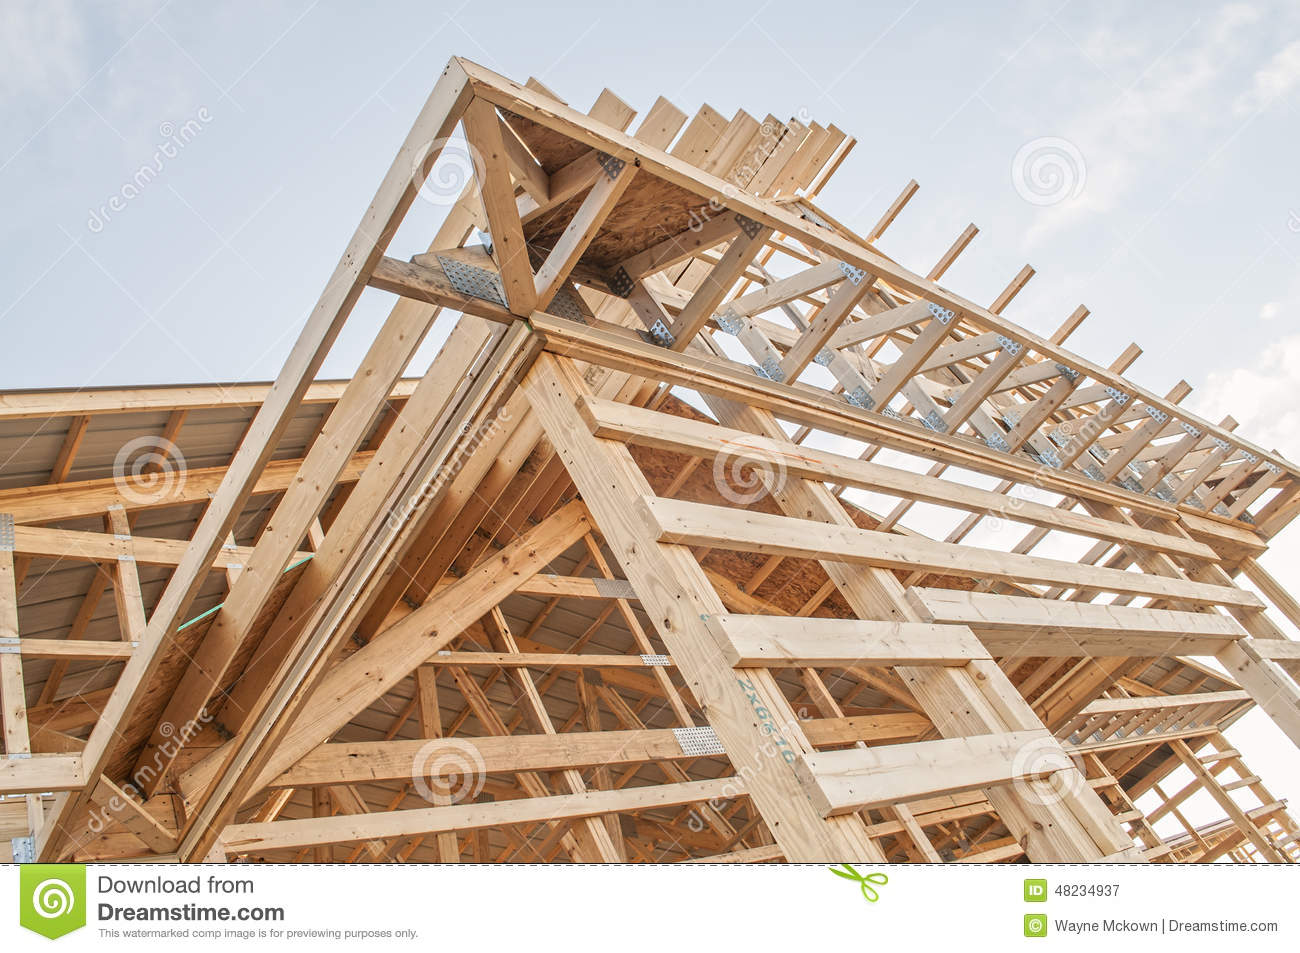 Framing new wooden building structure construction stock for Best wood for building a house